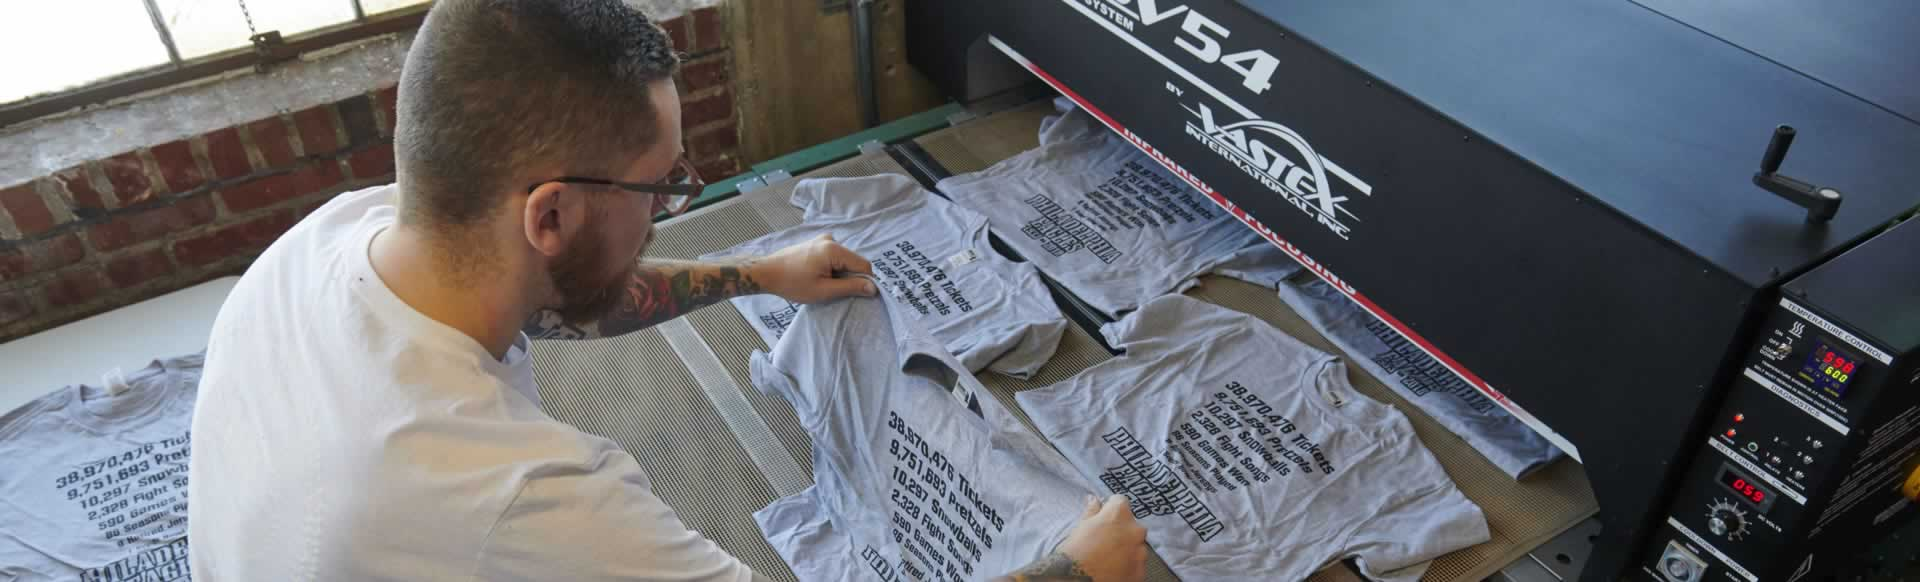 T-shirt Screen Printing Puts Pink in the Black